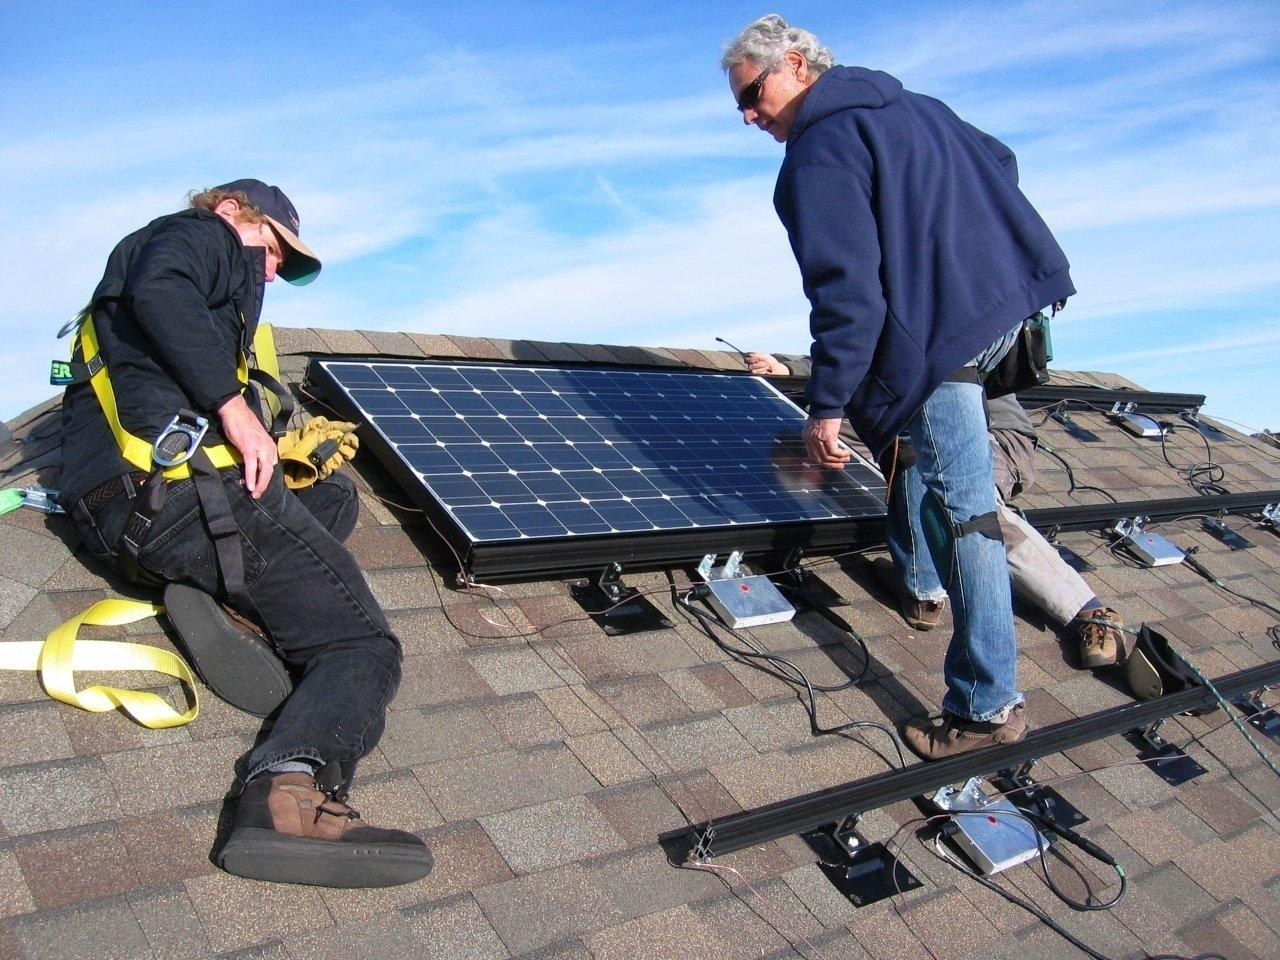 Larry instructing the author on his solar install -